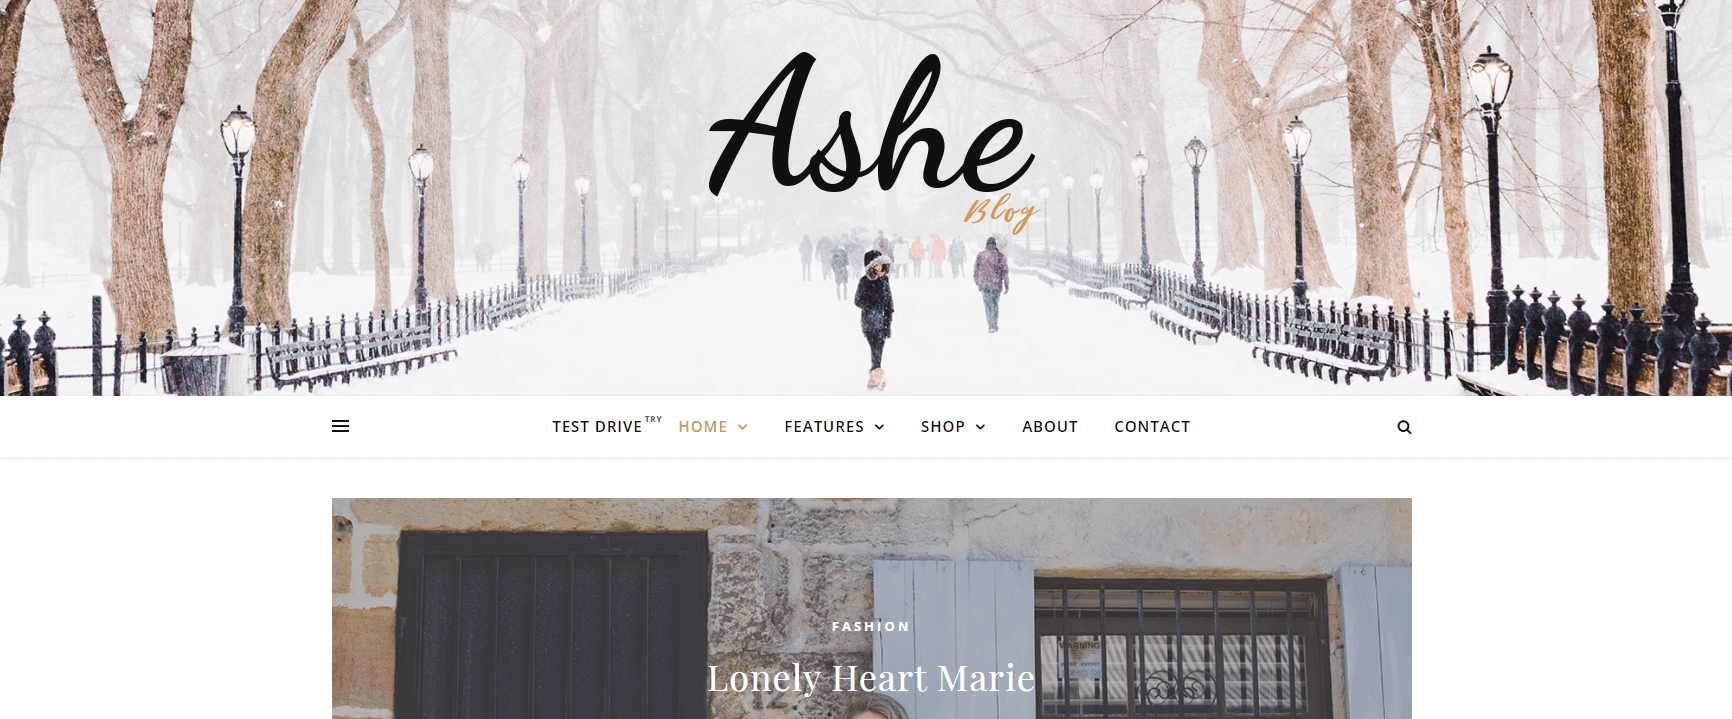 Ashe is one of the Best Free WordPress Themes for Small Business